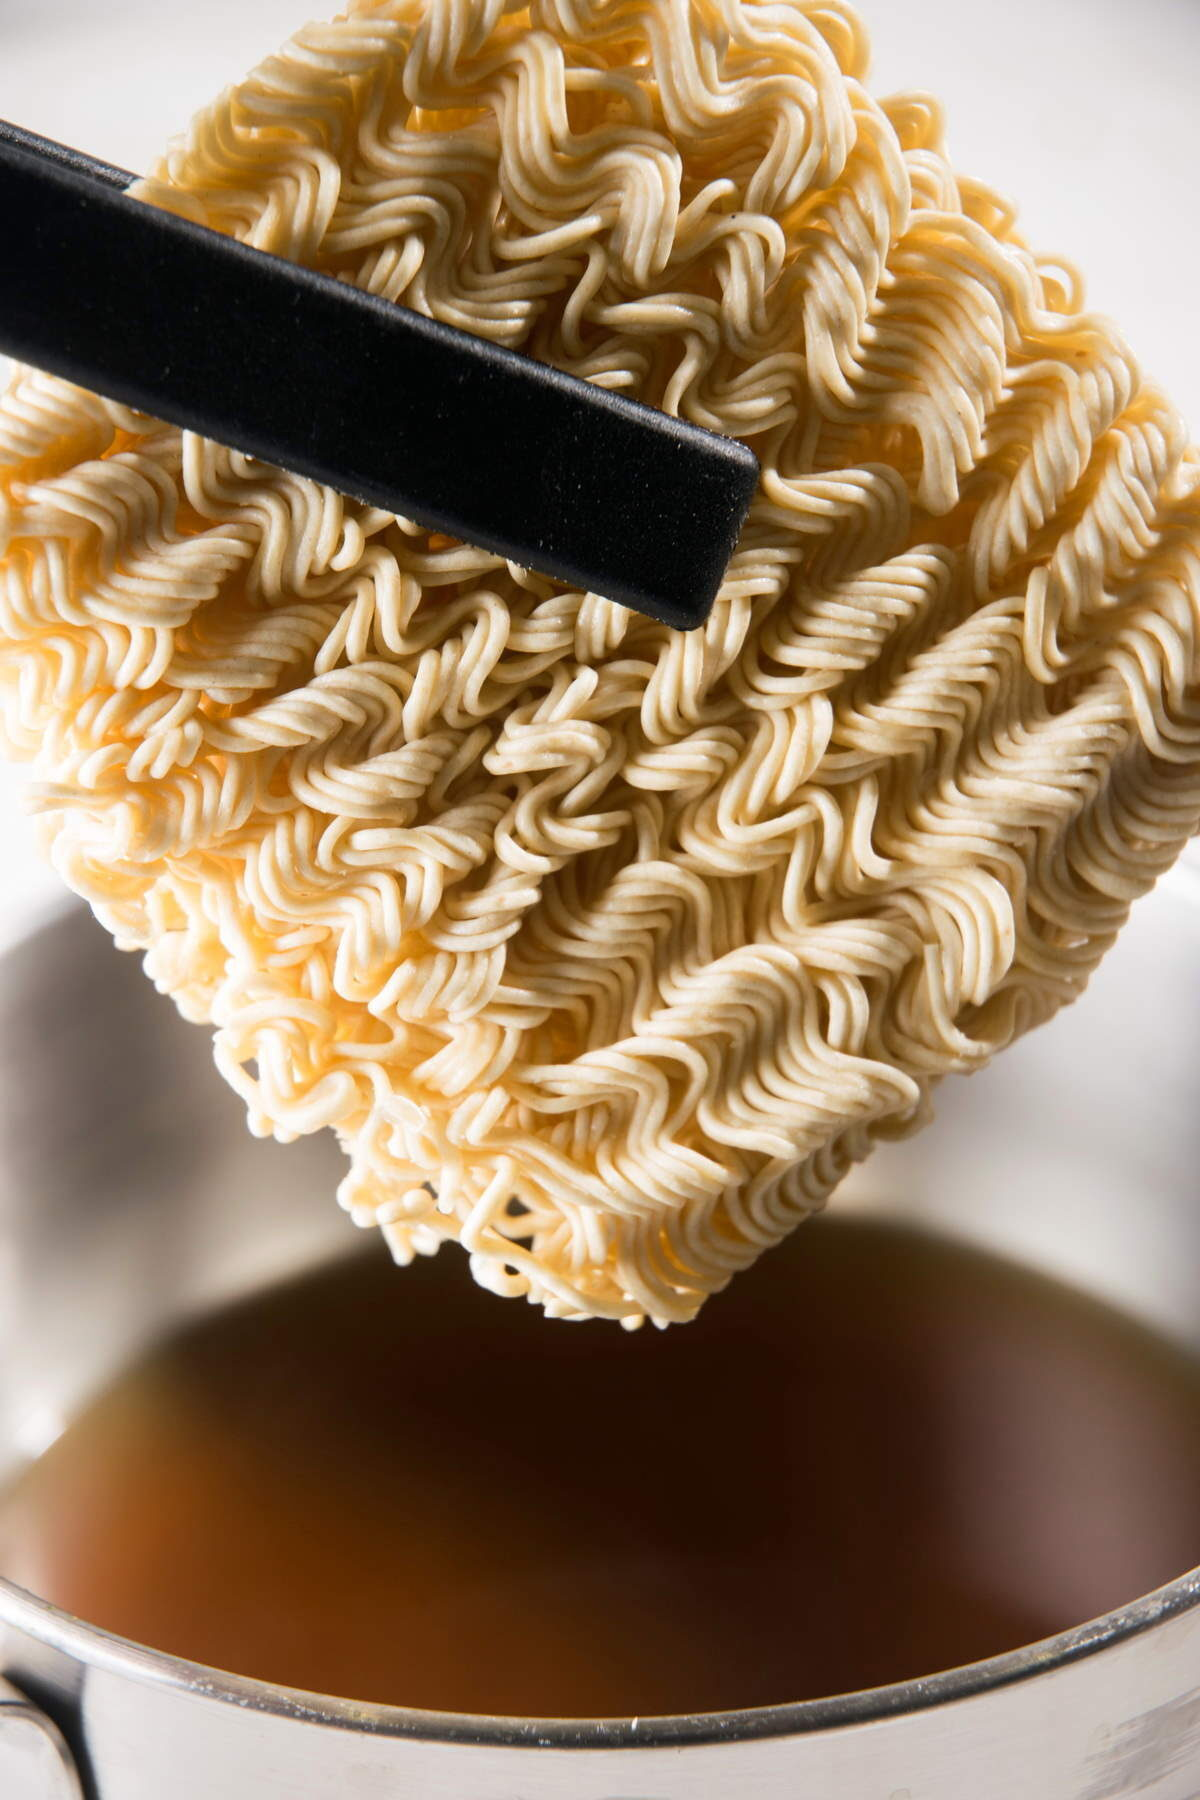 Instant ramen noodles in a pot with tongs.